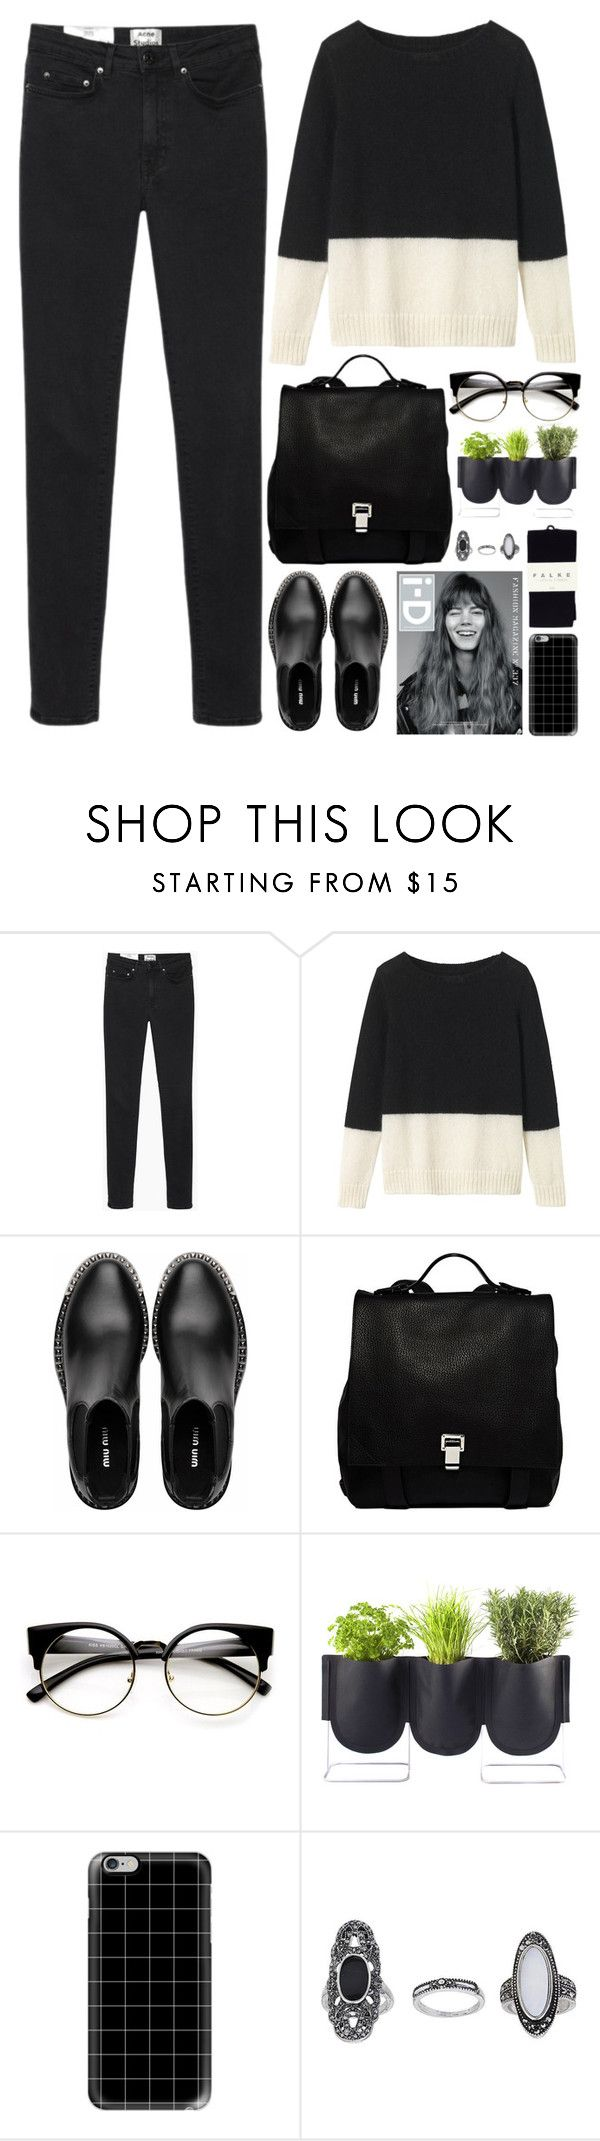 """""""Dog Days Are Over"""" by annaclaraalvez on Polyvore featuring Acne Studios, Toast, Miu Miu, Proenza Schouler, Authentics, Casetify, Topshop and Falke"""